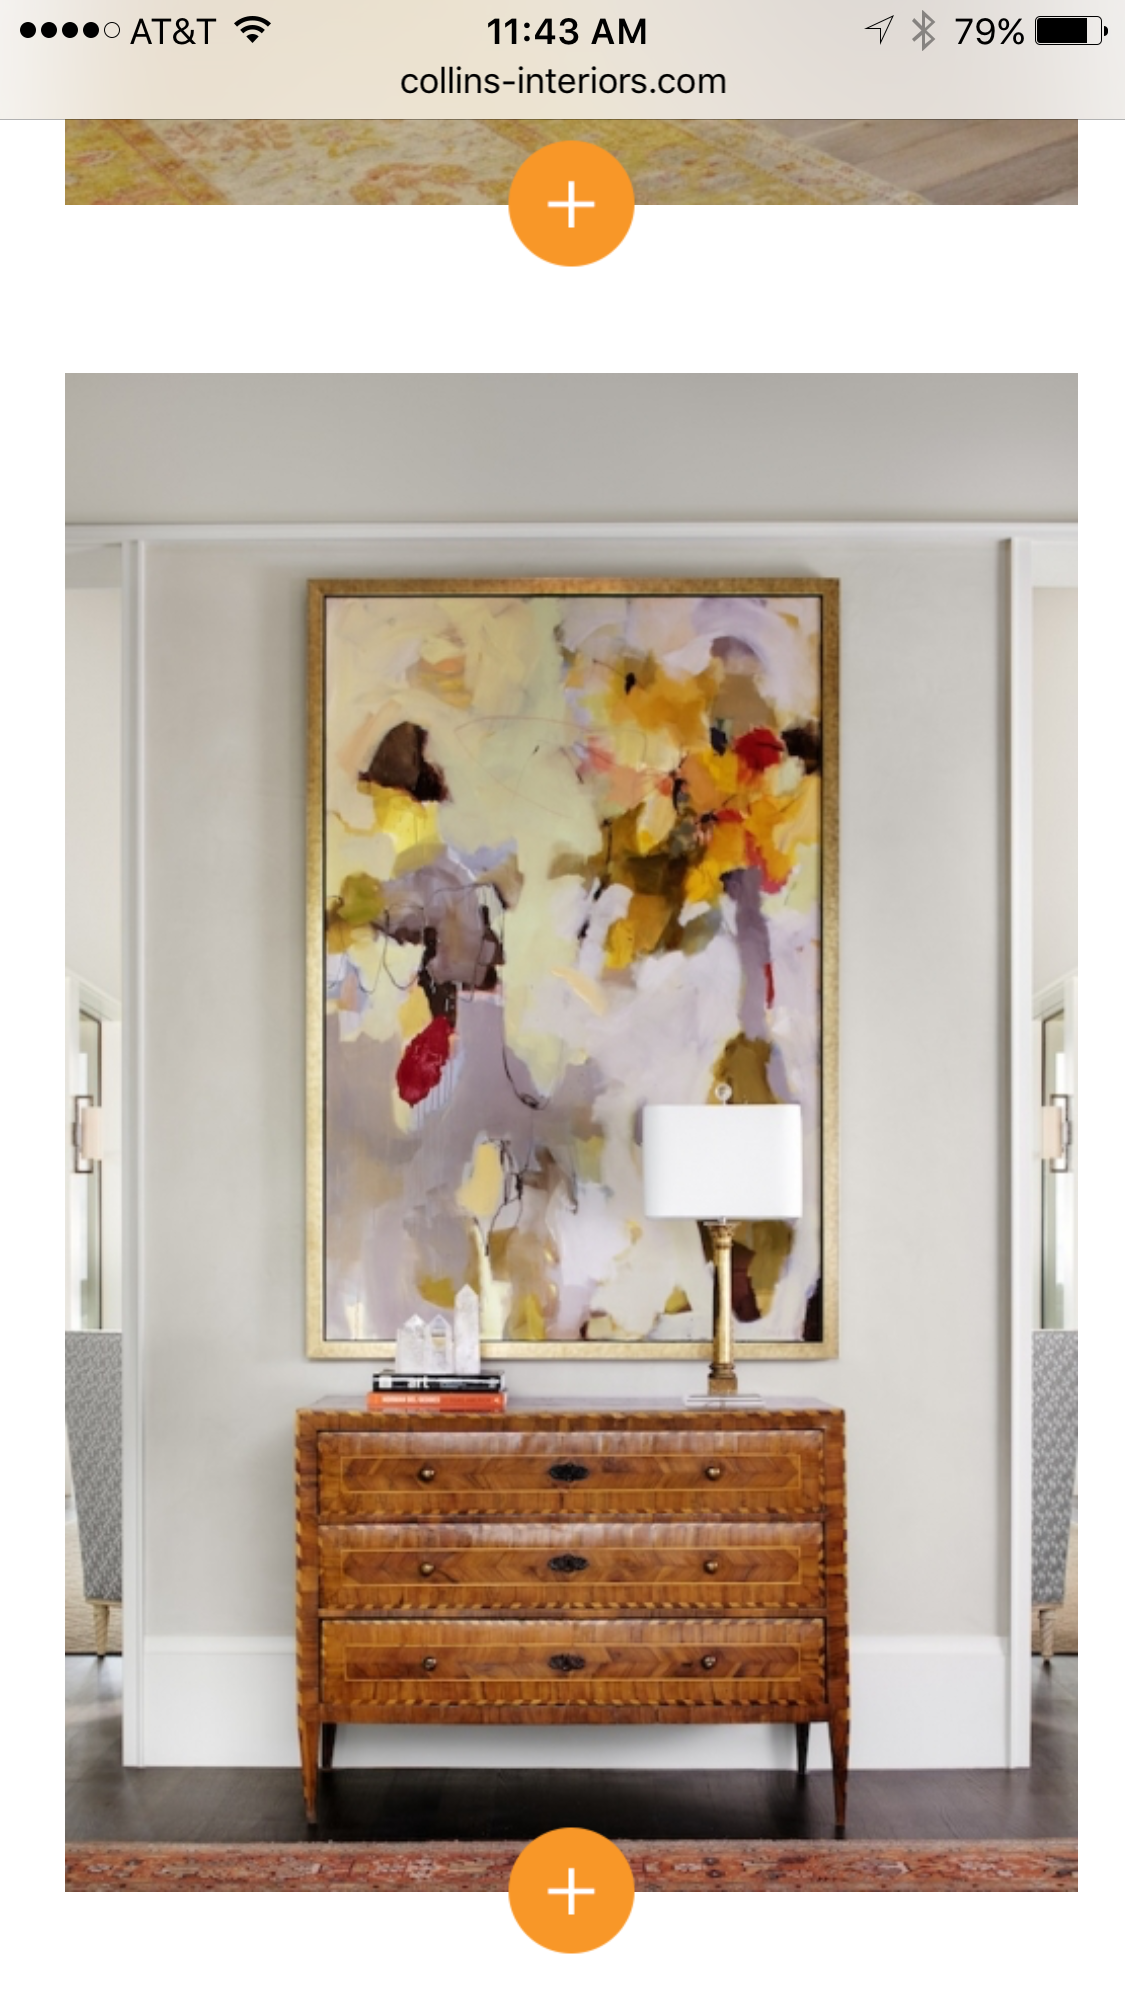 Swap Out Your Current Entryway Art For A Piece Featuring